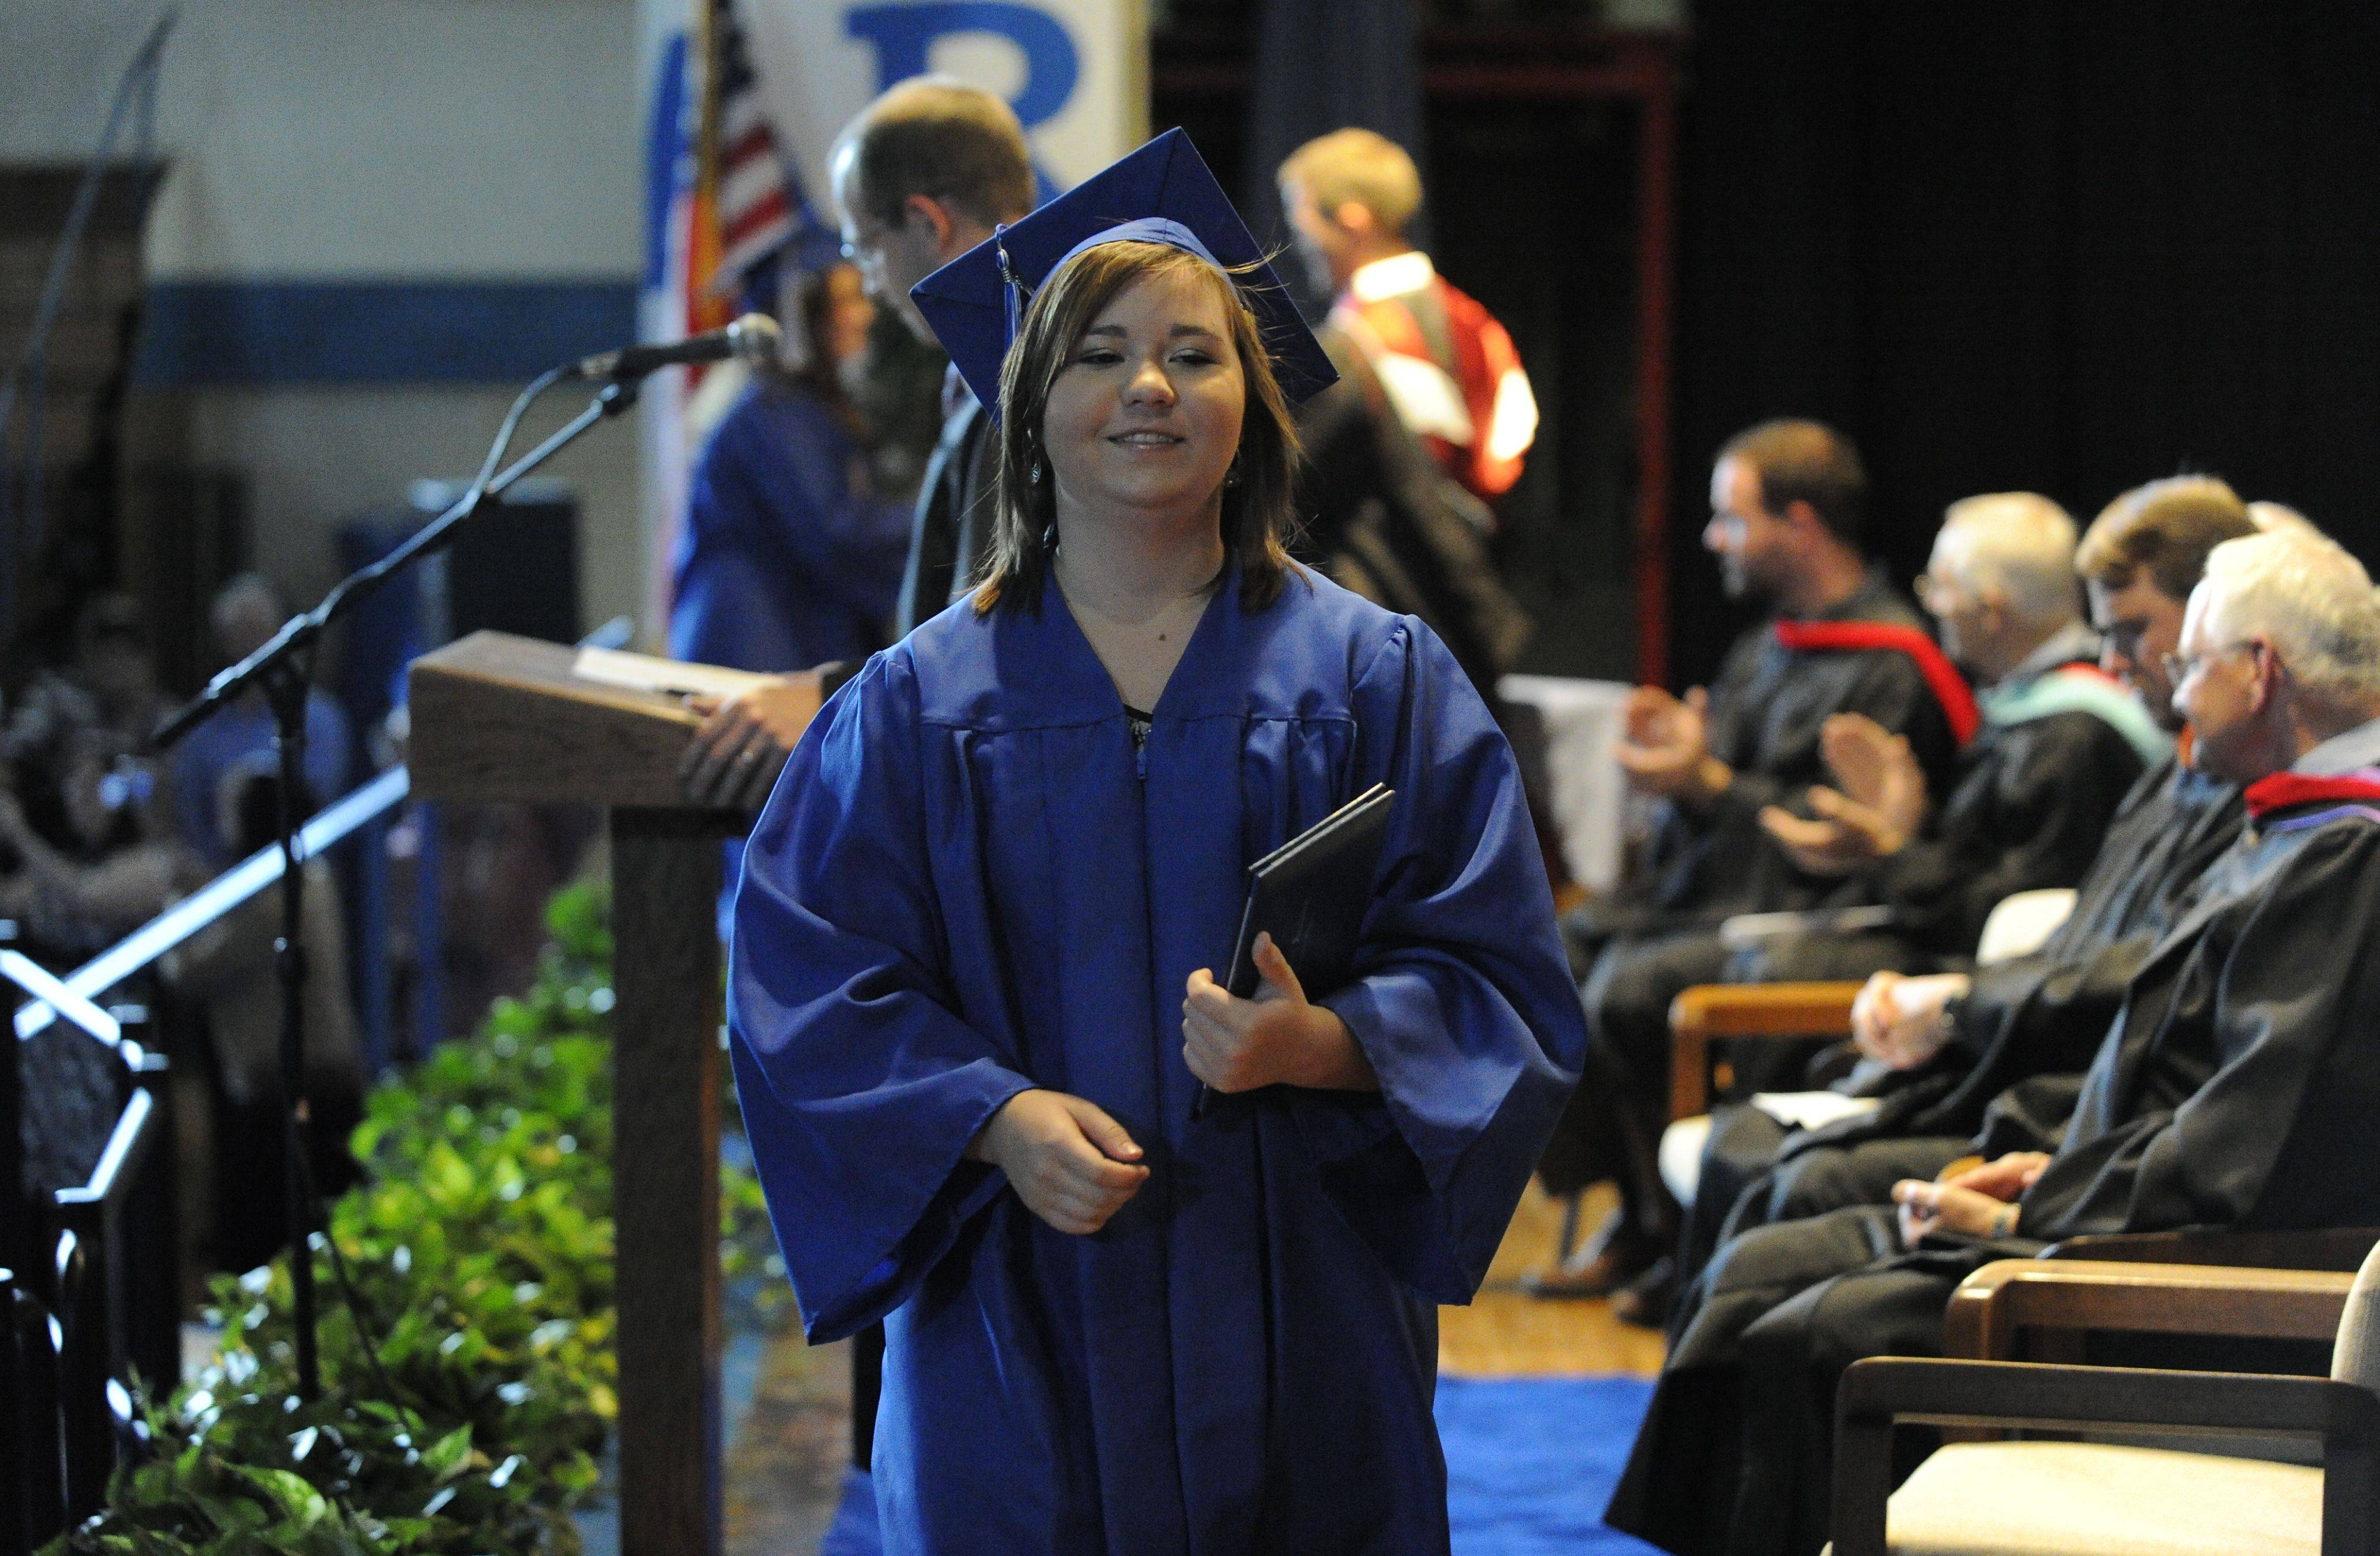 Images from the Christian Liberty Academy graduation on Sunday, June 12th